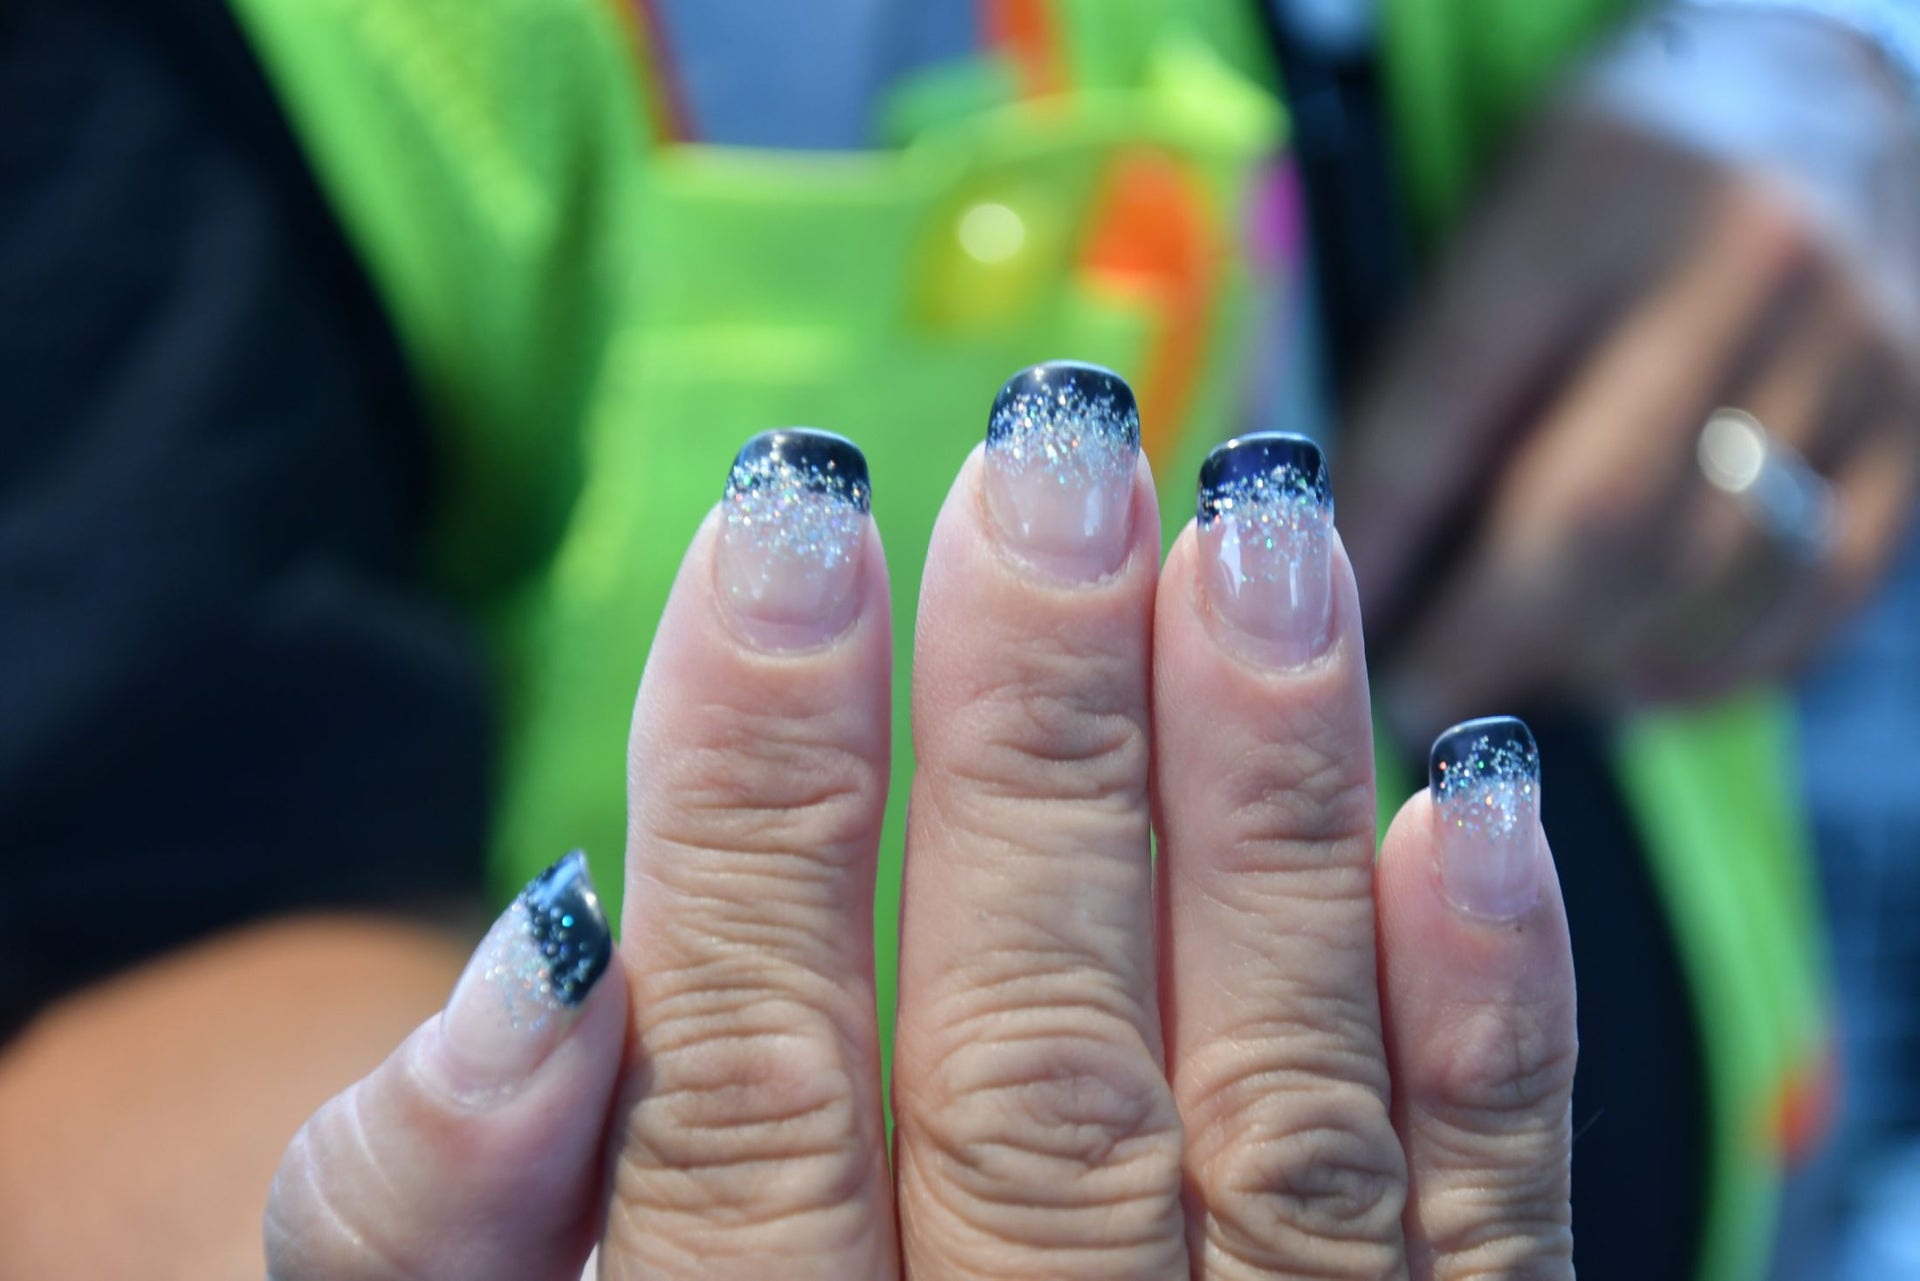 A woman in Anna, IL shows off her eclipse-themed manicure.